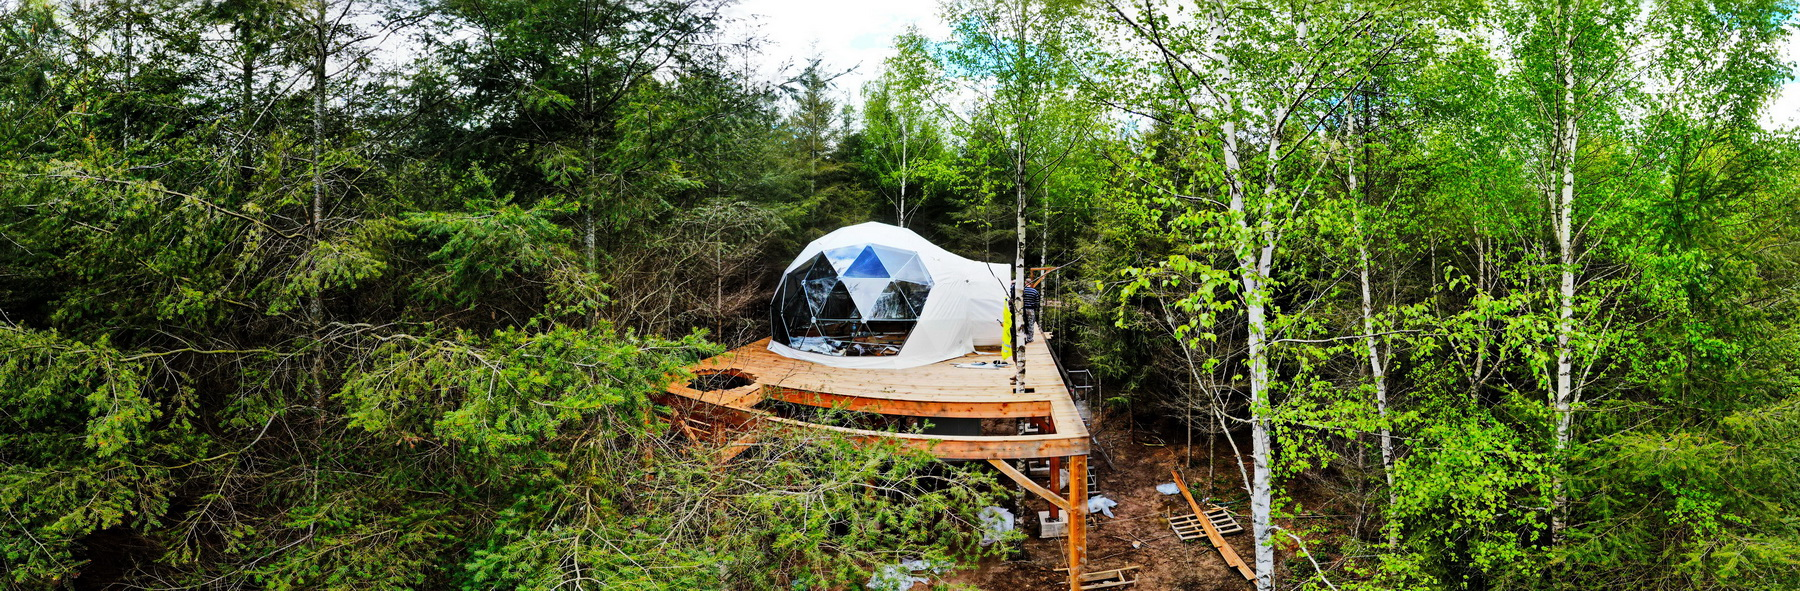 28m2 Glamping Dome Ø6m Domaine Ouréa / Eco-lodge & Spa FRANCE